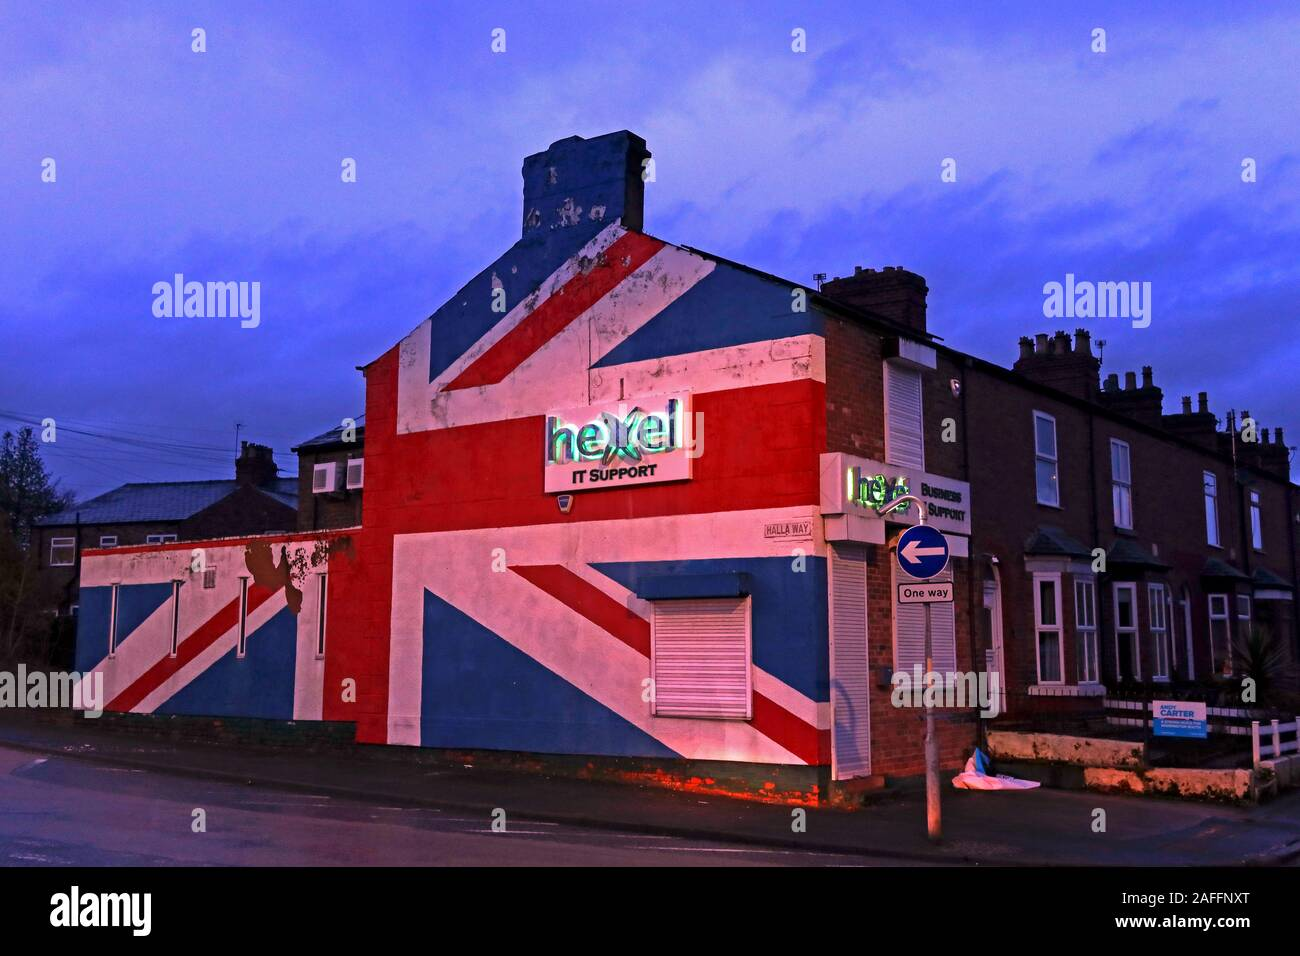 GoTonySmith,HotpixUK,@HotpixUK,dusk,night,at dusk,nighttime,night time,WA4,Great Britain,British,United Kingdom,ICT,union flag,painted on Hexel IT Support,15 Wash Lane,Cheshire,England,UK,painted,Brexit,patriotic,gable end,gable-end,shop,company,Jubilee,Queen,Diamond Jubilee,proud to be British,British Pride,Jubilee 2012,Olympics 2012,God Save The Queen,ER,Shankhill Road,Belfast